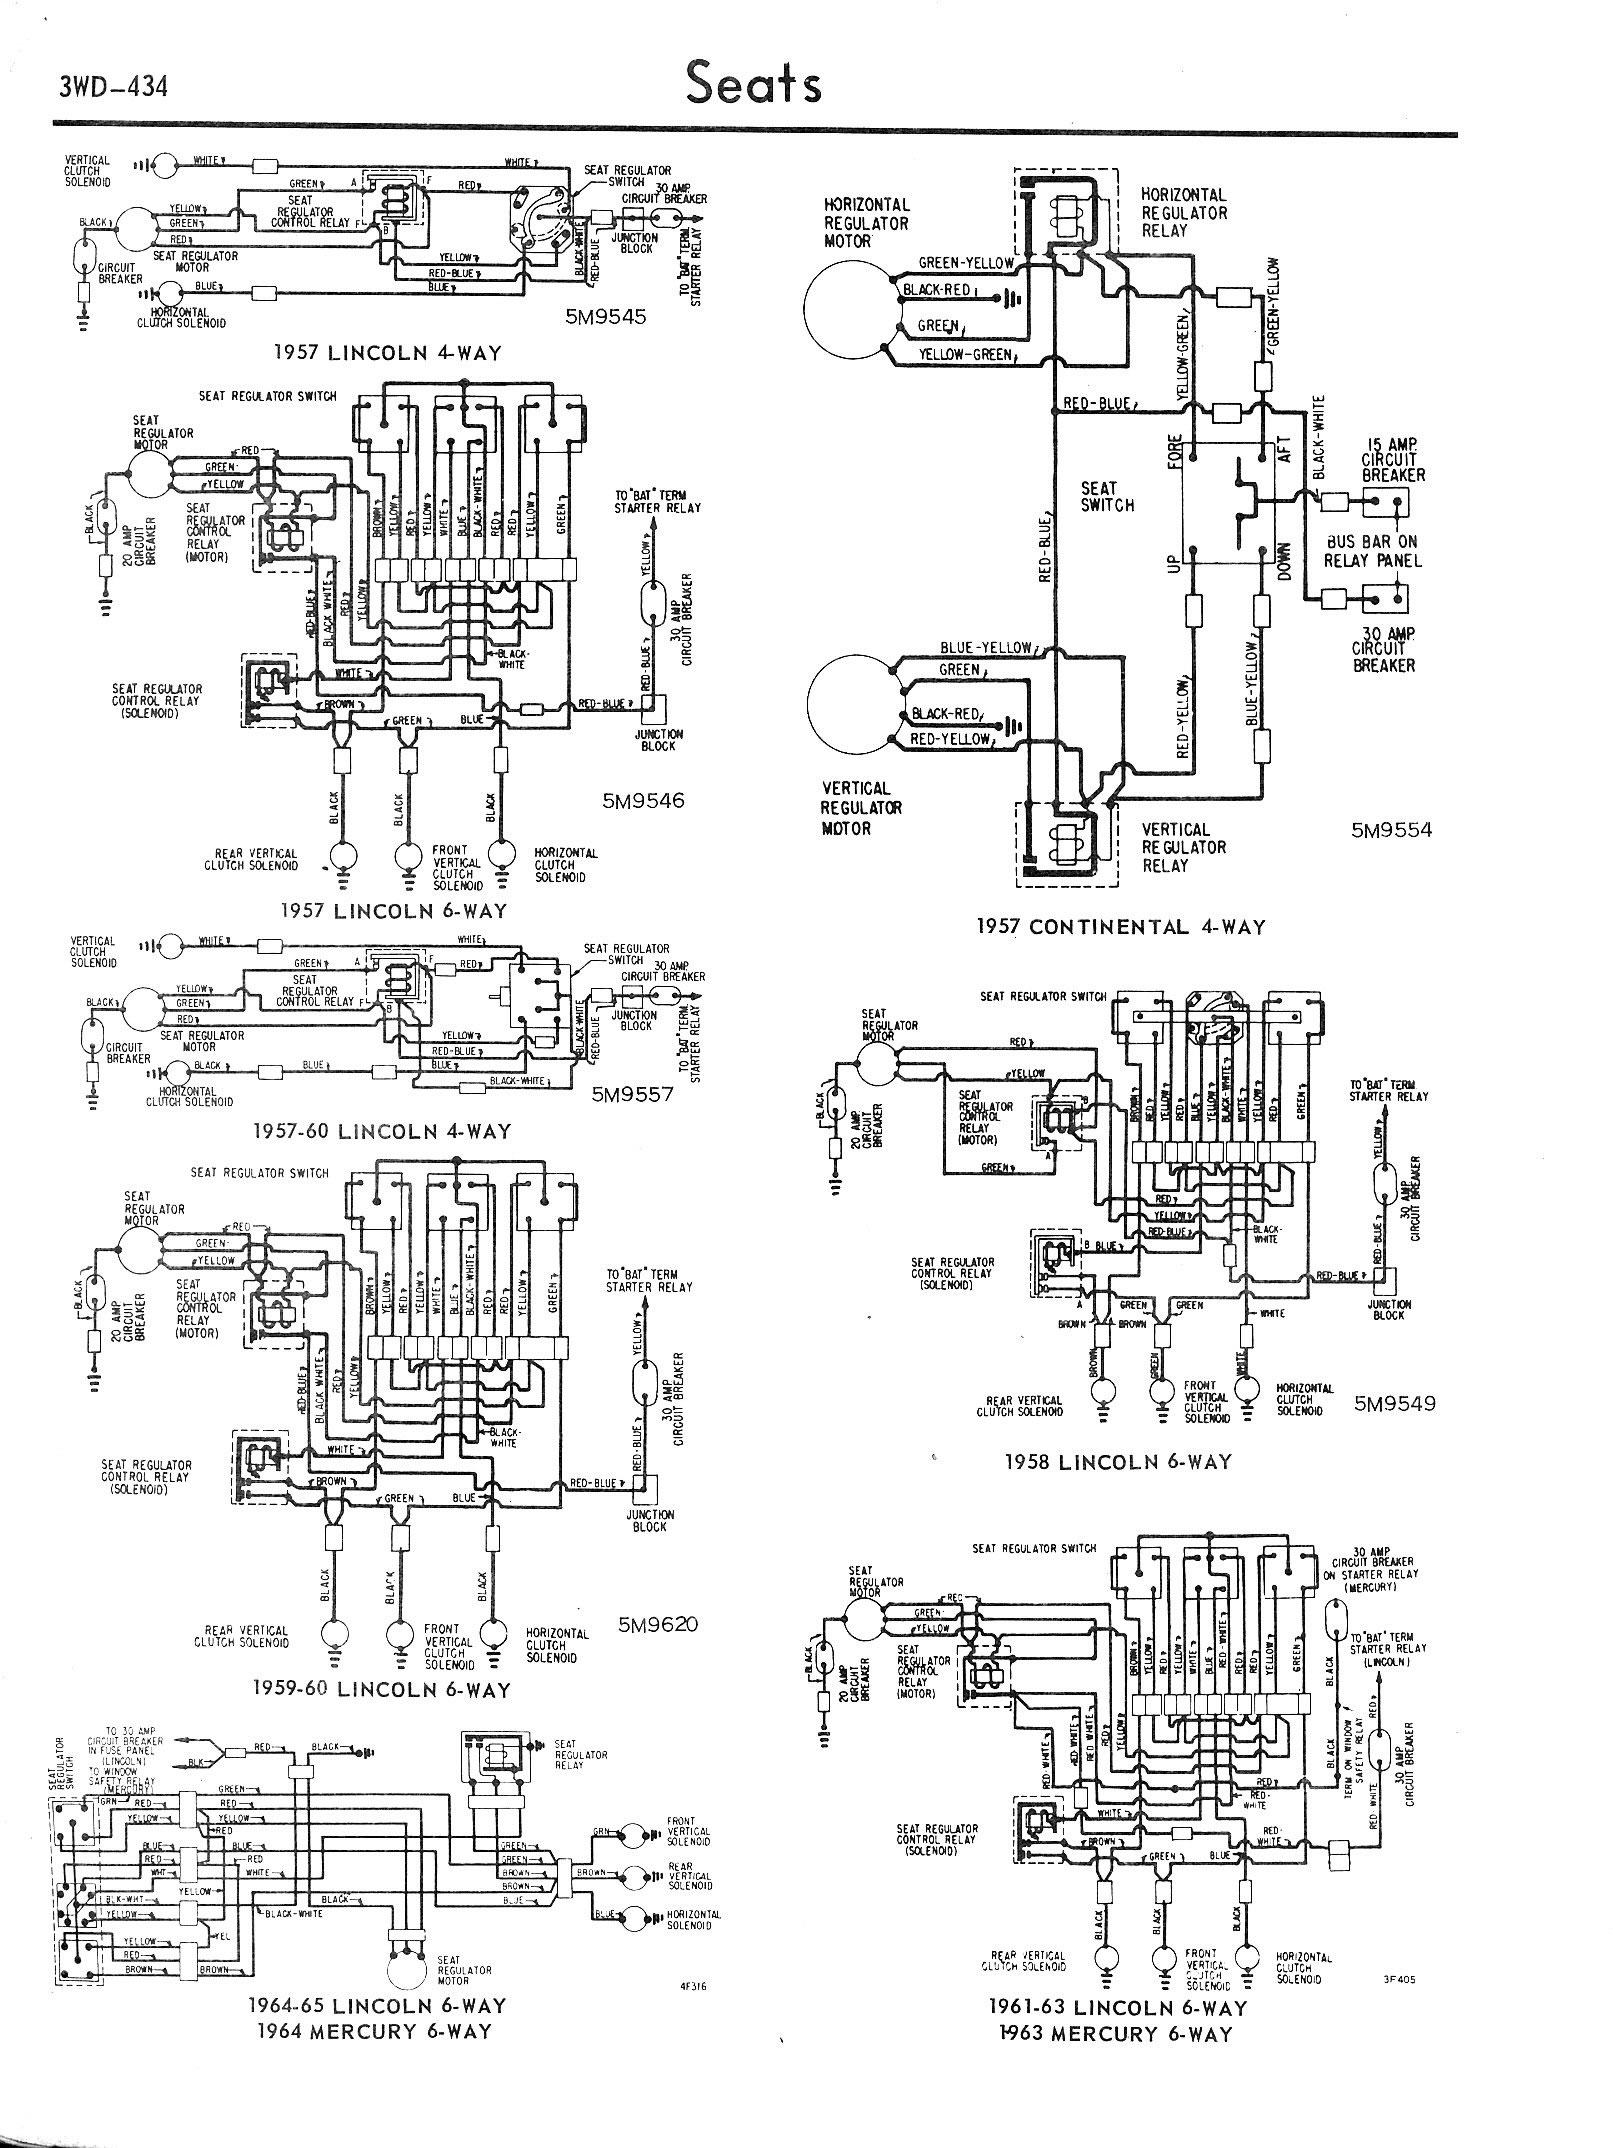 Ford Diagrams Raptor 60 Amp Wiring Diagram 57 65 Lincoln 4 Way 6 Continental 63 64 Mercury